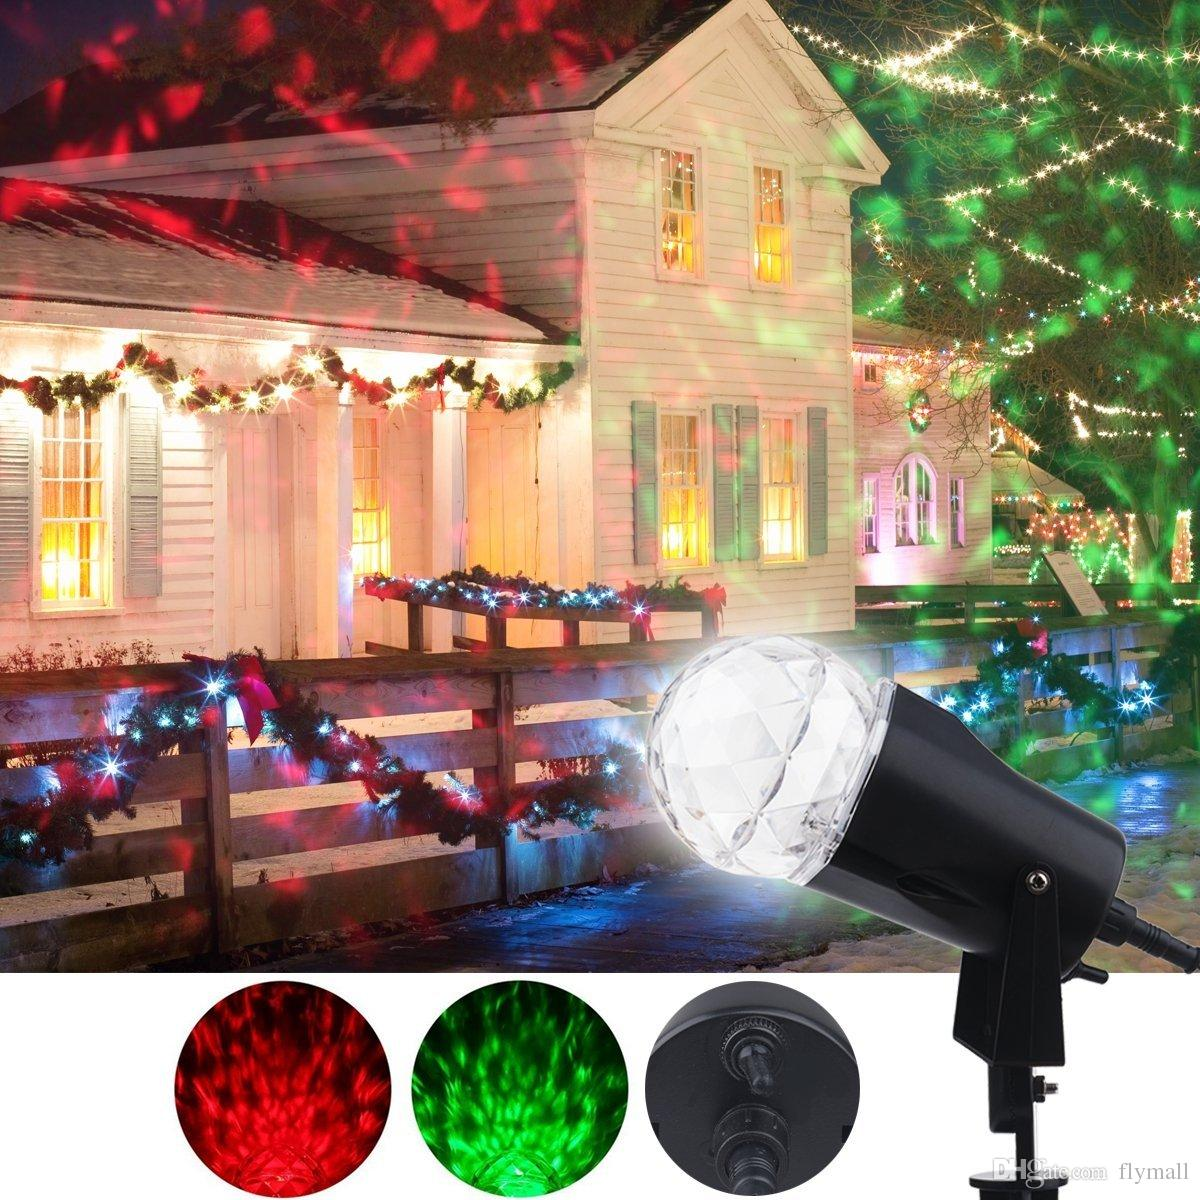 star lights lighting guide shower projection outdoor christmas